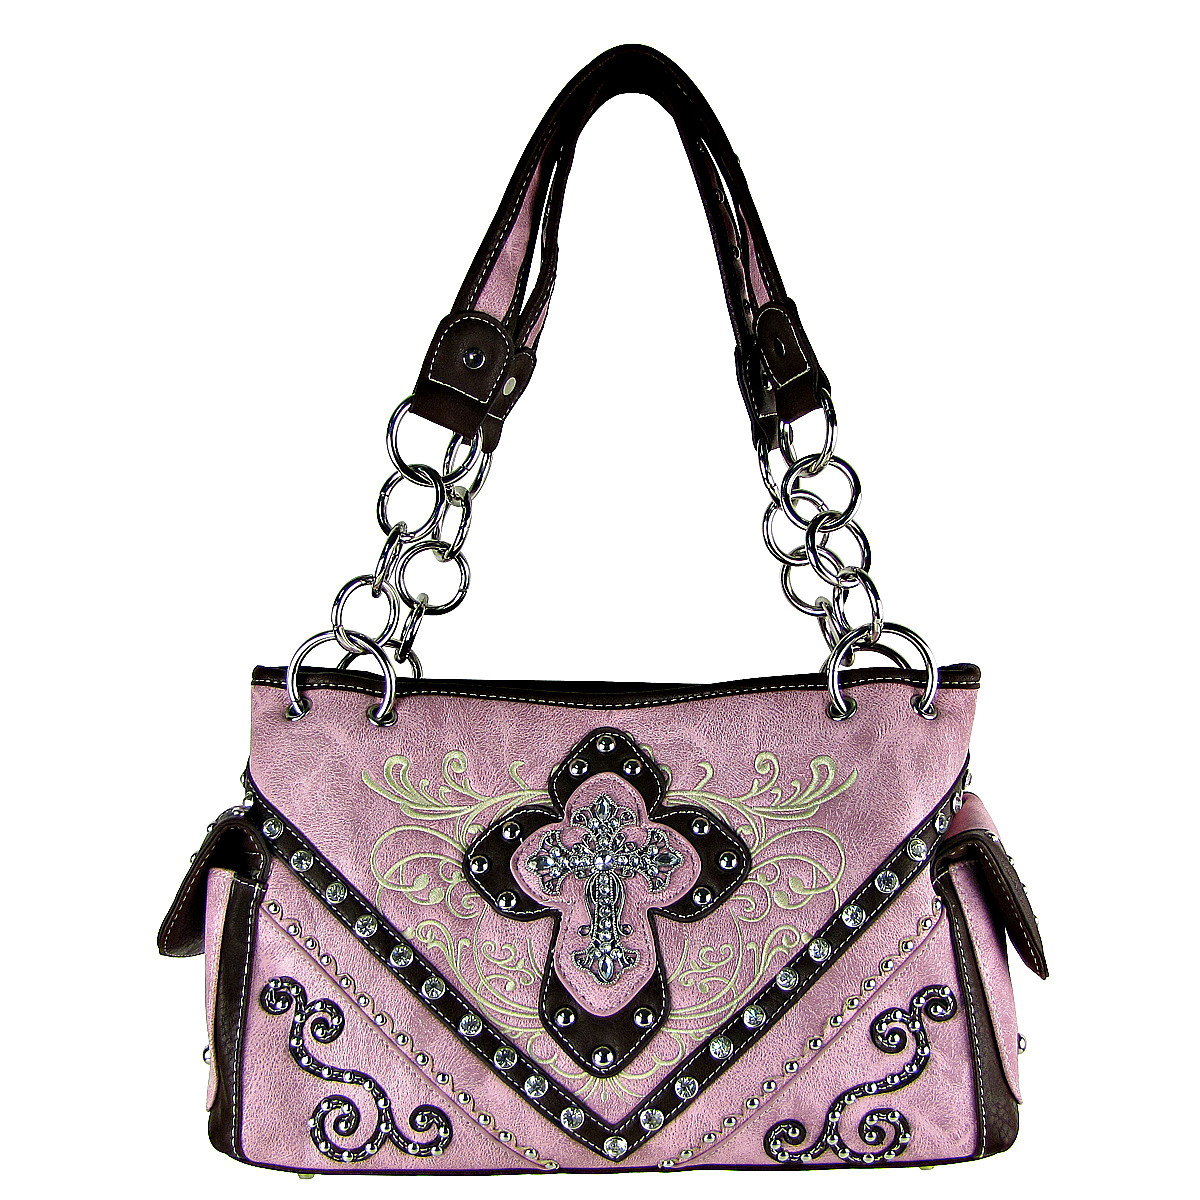 PINK WESTERN STITCH CROSS CONCEALED CARRY LOOK SHOULDER HANDBAG HB1-CHF0031PNK